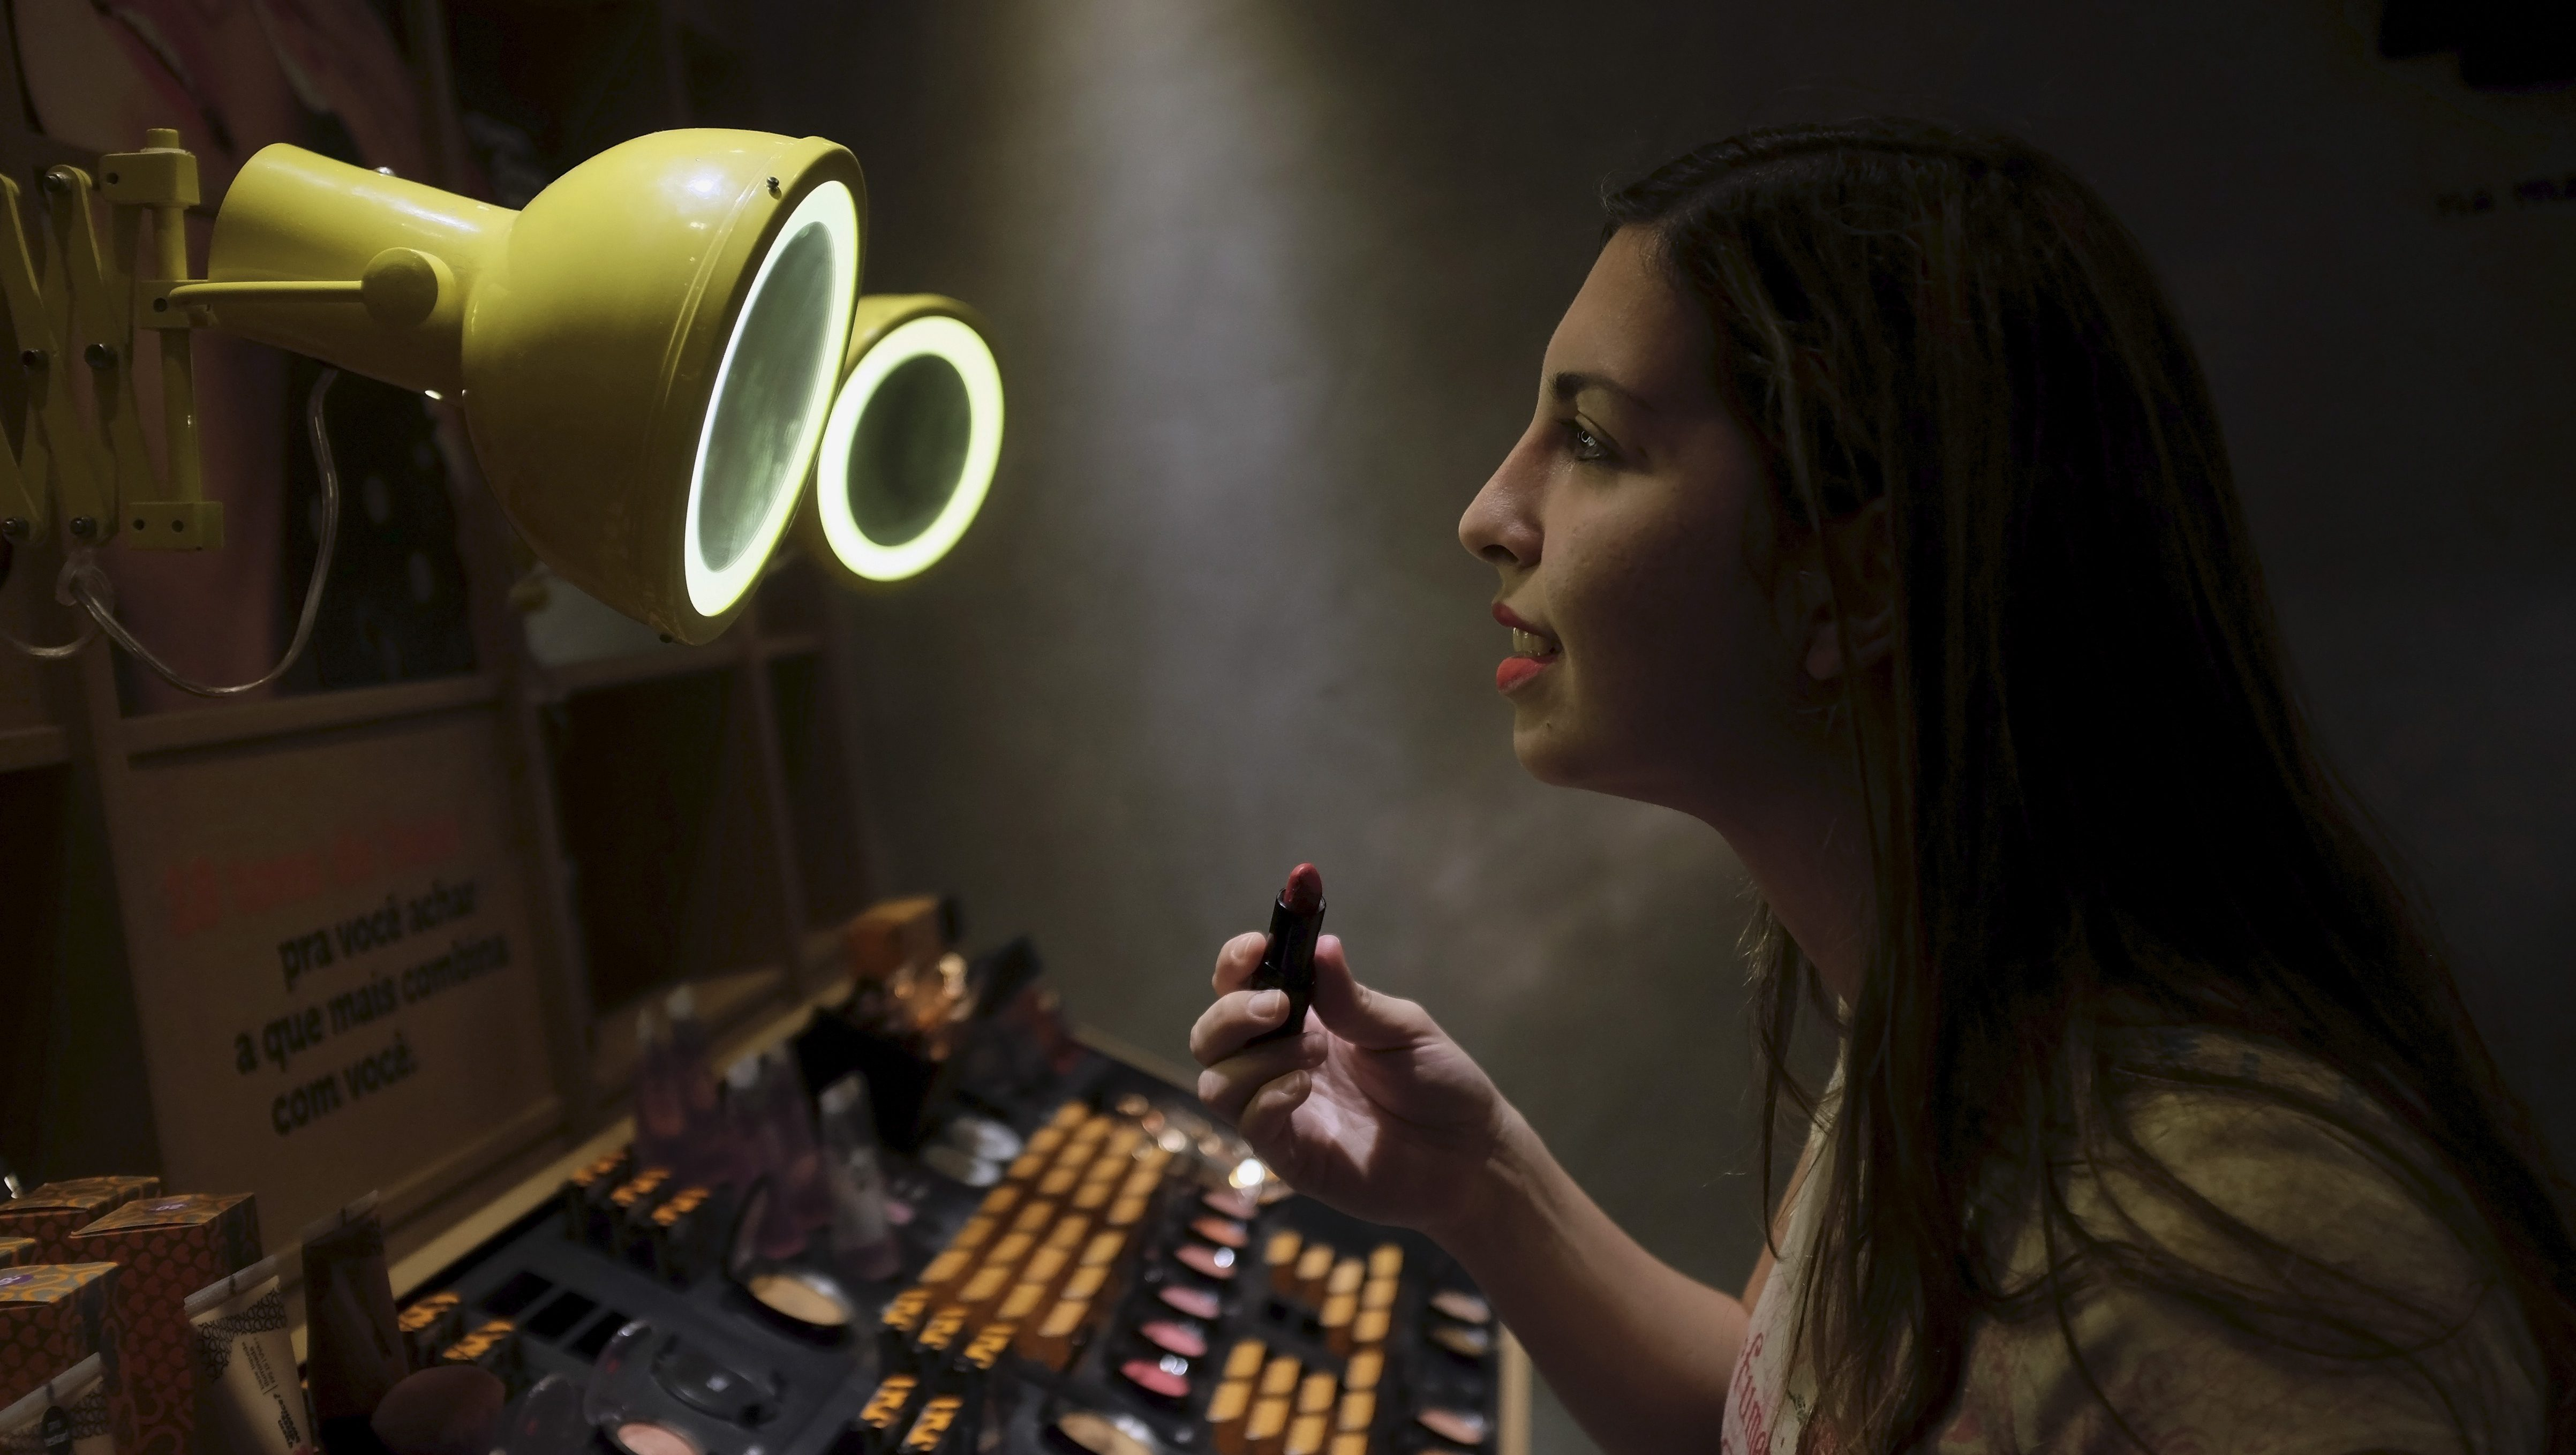 A woman checks lipstick applied on her lip, inside of a cosmetics shop in Sao Paulo, Brazil August 13, 2015. From cigarettes to lipstick to sandals, exports have emerged as a silver lining for Brazilian consumer goods companies that are suffering the worst domestic slump in over a decade. With Brazil's currency, the real, at a 12-year low, foreign sales have kept several companies in the black, helping them outperform rivals focused on the local market, according to a Reuters analysis of second-quarter earnings. REUTERS/Nacho Doce - GF10000173277